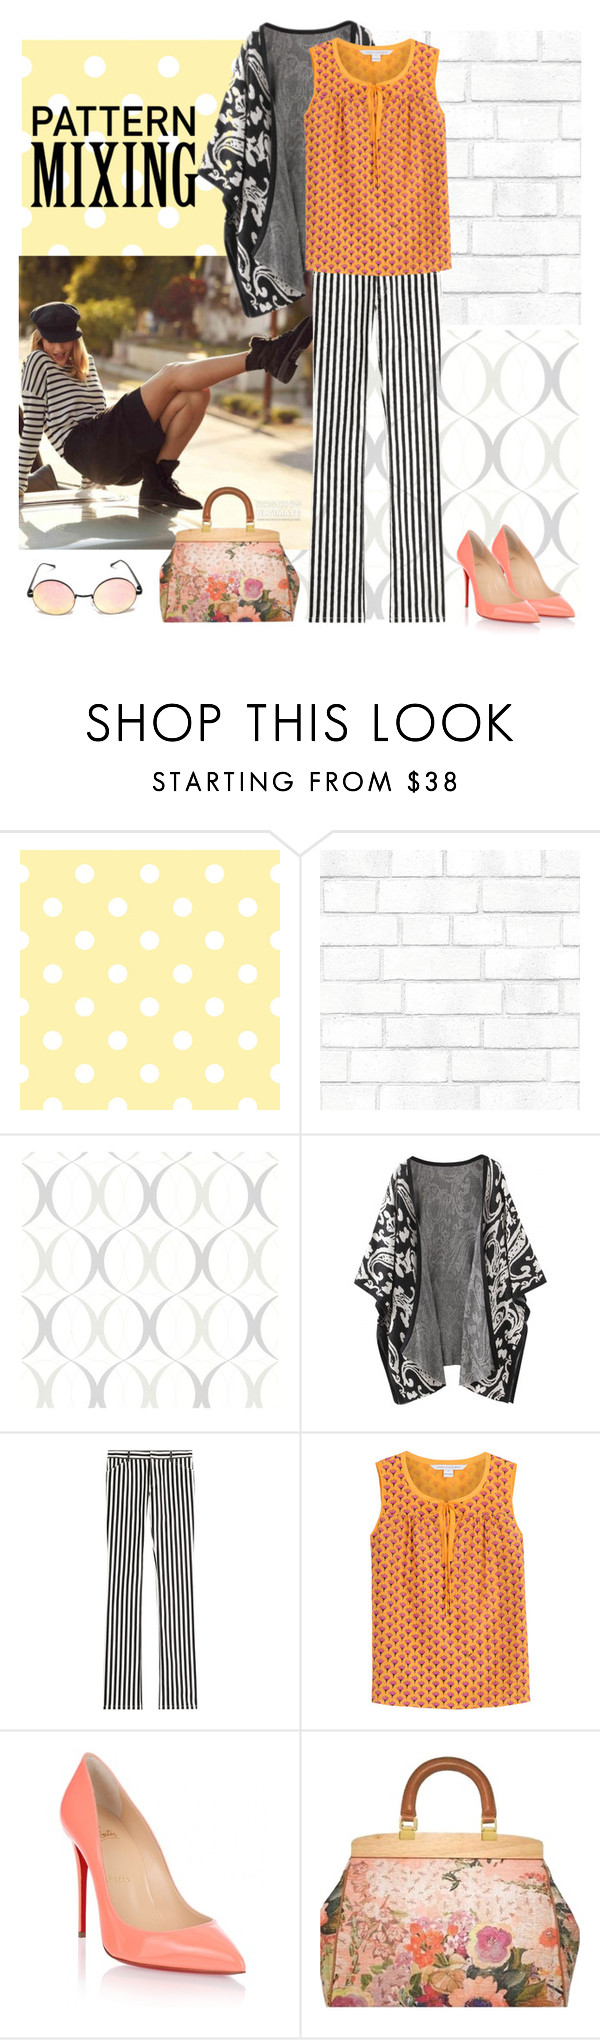 """""""#pattern mixing"""" by elizaja68 ❤ liked on Polyvore featuring Tempaper, Brewster Home Fashions, Whiteley, Philosophy di Lorenzo Serafini, Diane Von Furstenberg, Christian Louboutin and Tory Burch"""